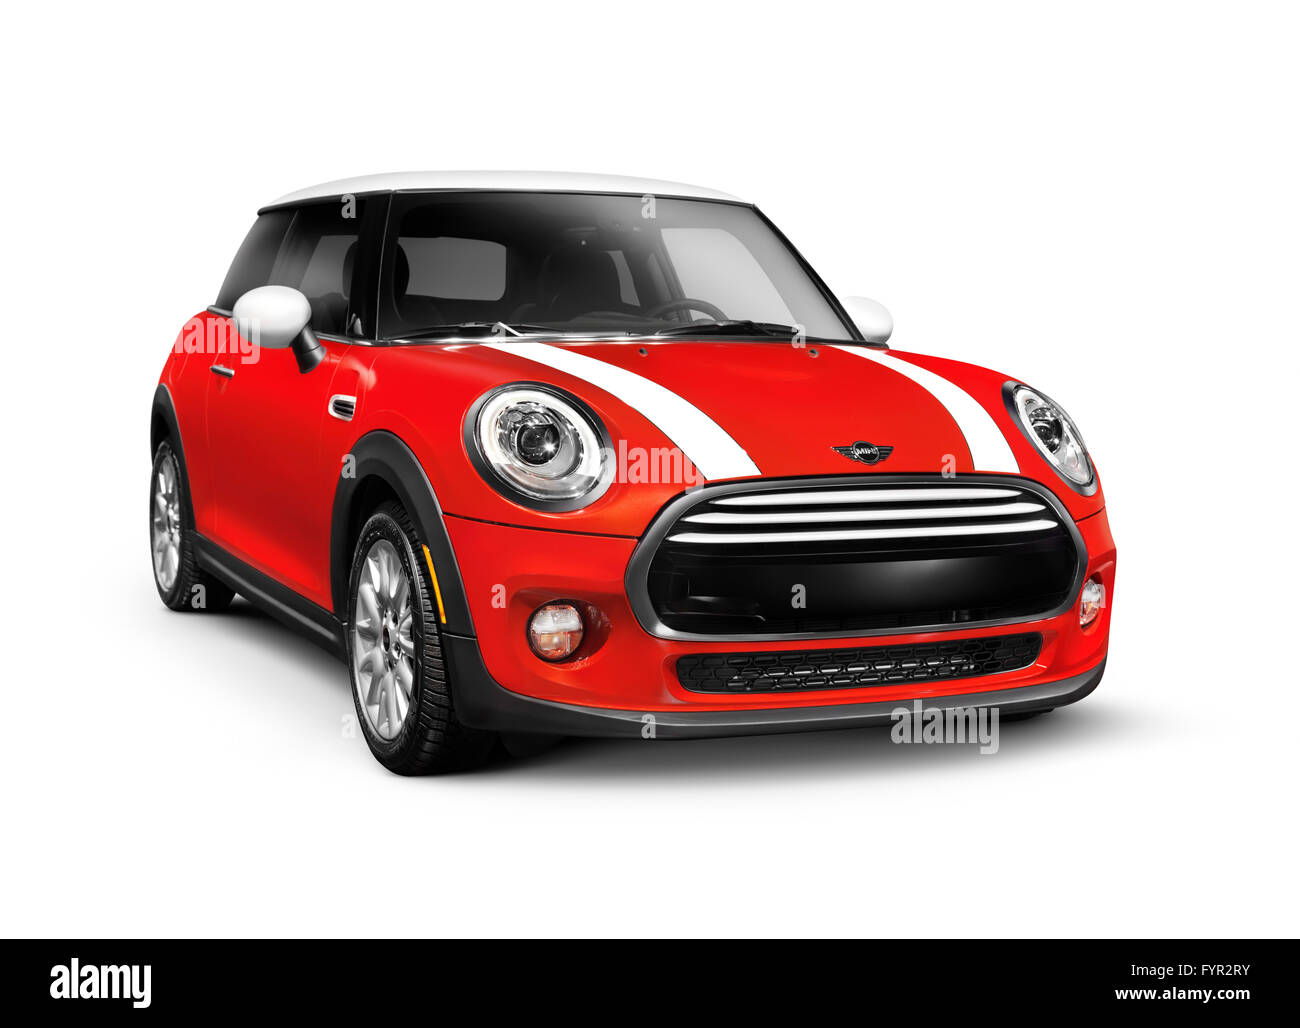 Red 2014 Mini Cooper Hardtop compact city car - Stock Image